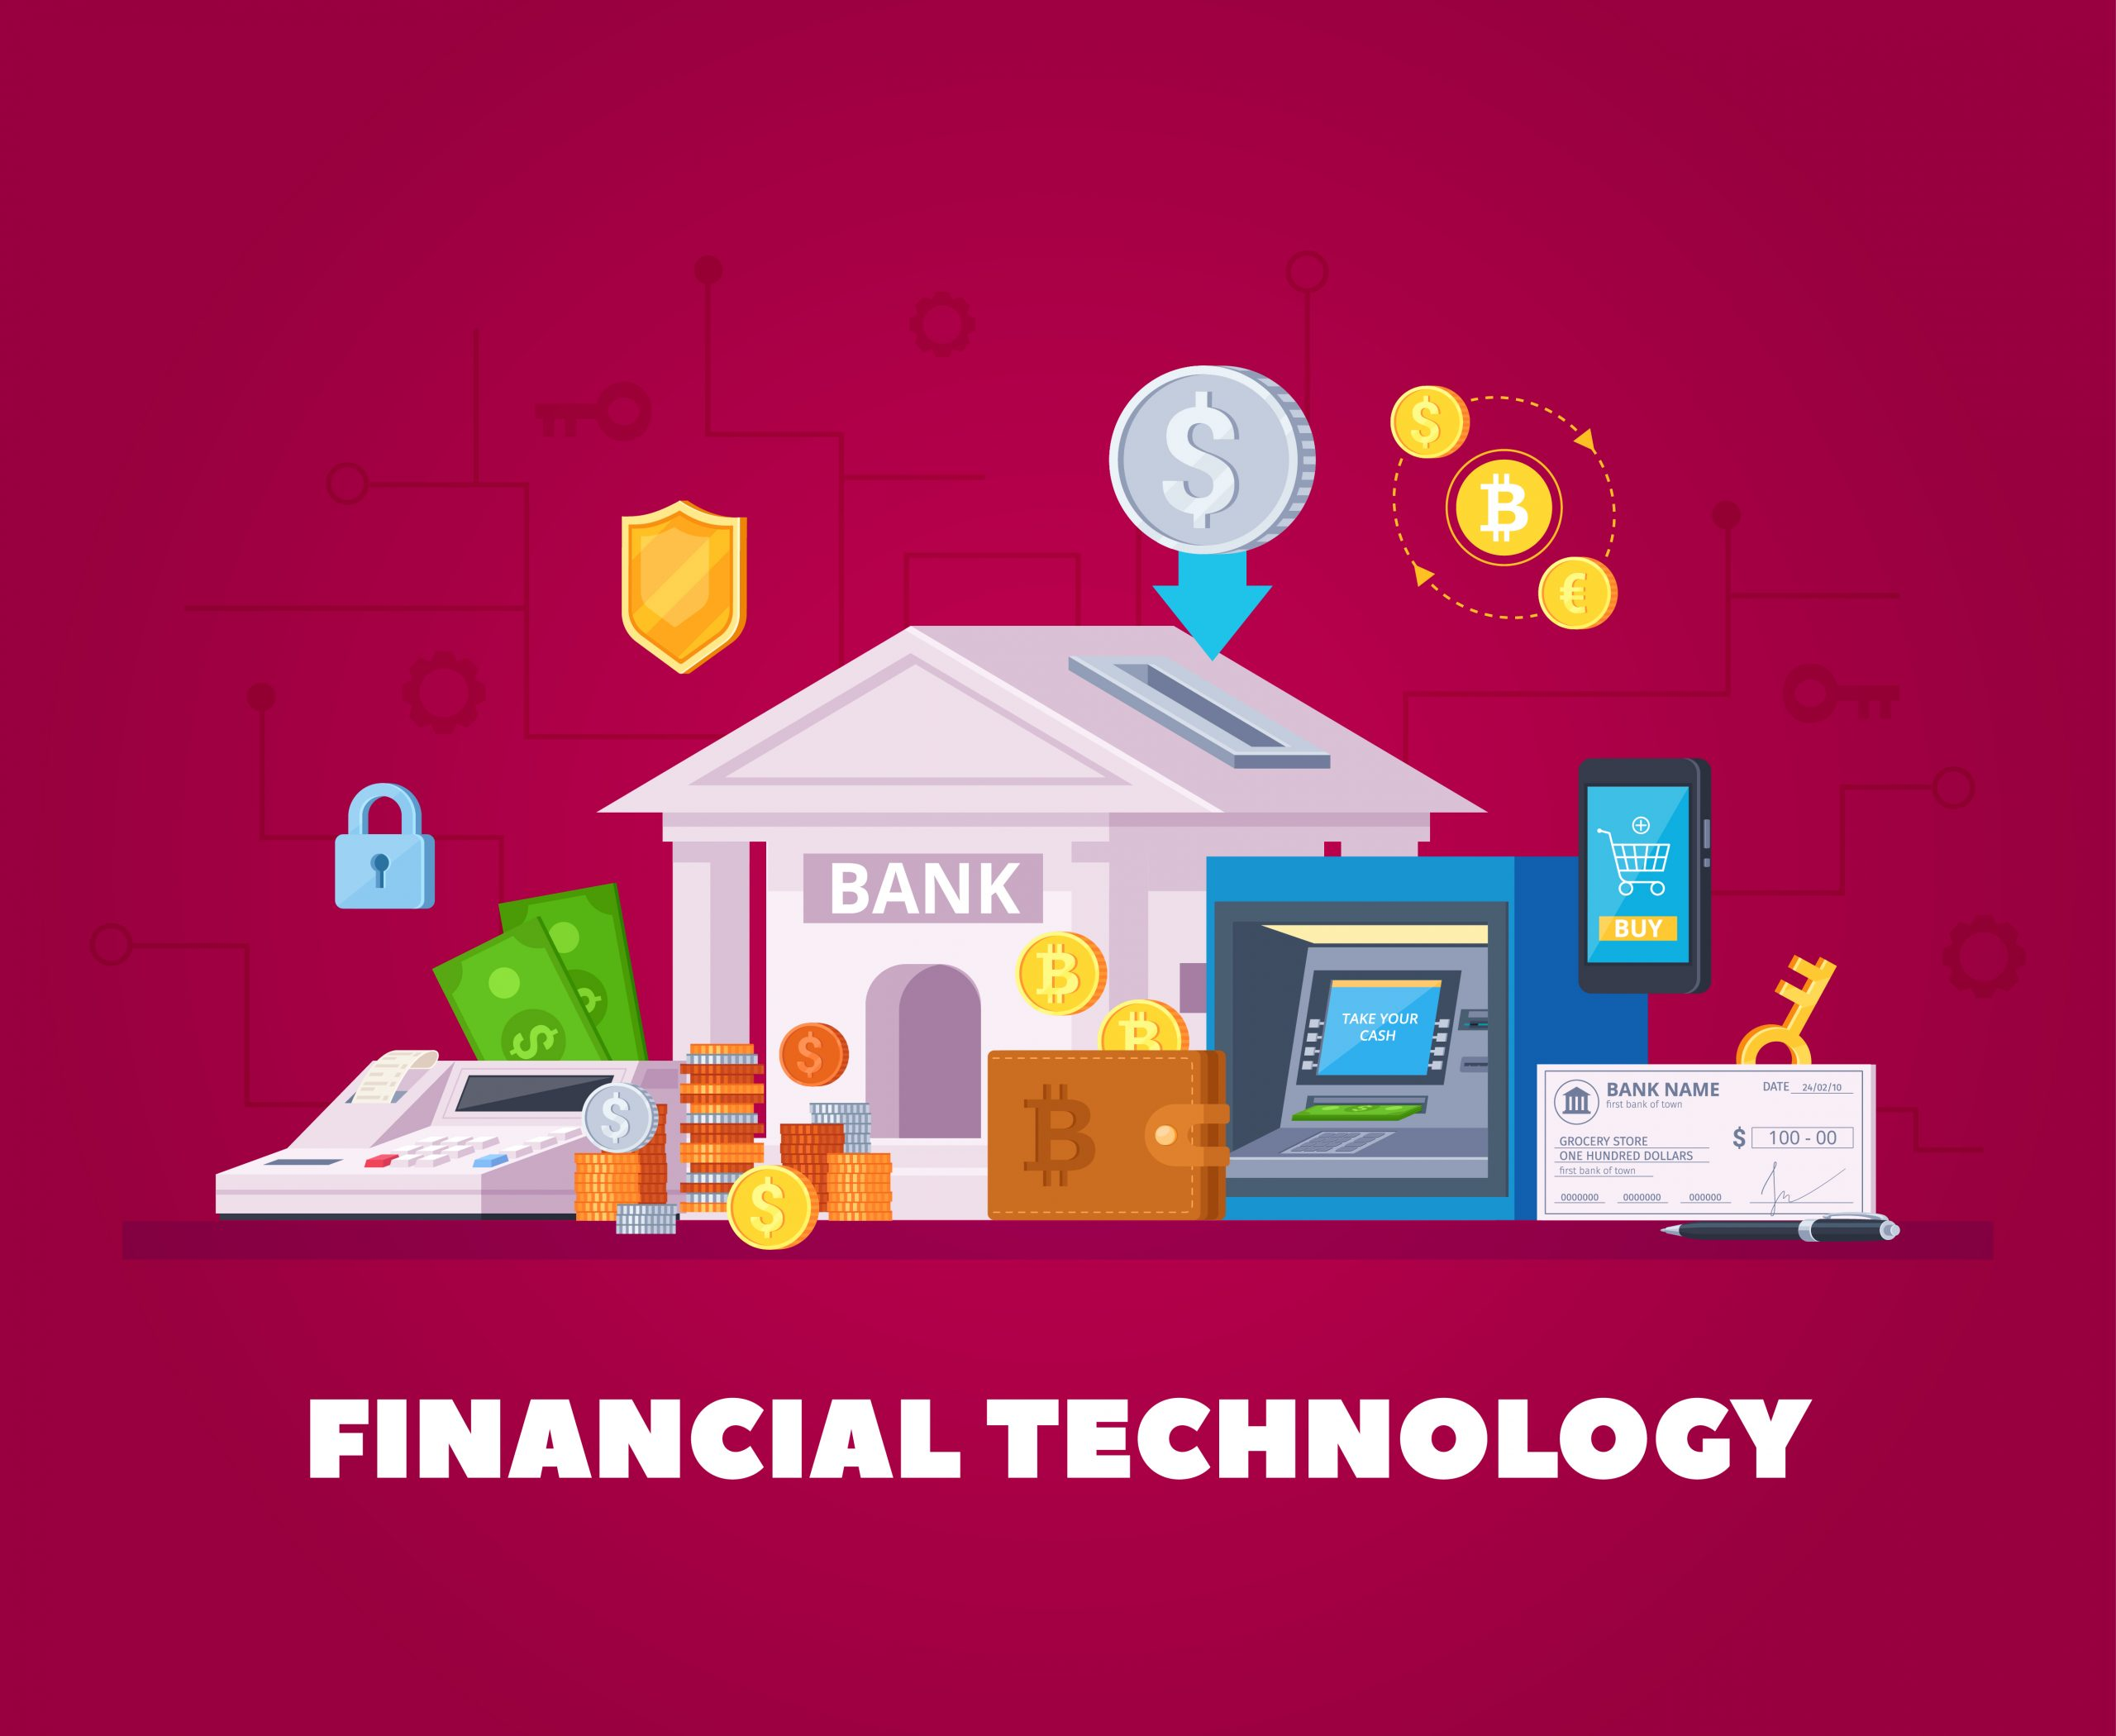 Reinventing Banking: 4 Technologies to Modernize Your Consumer Banking Experience